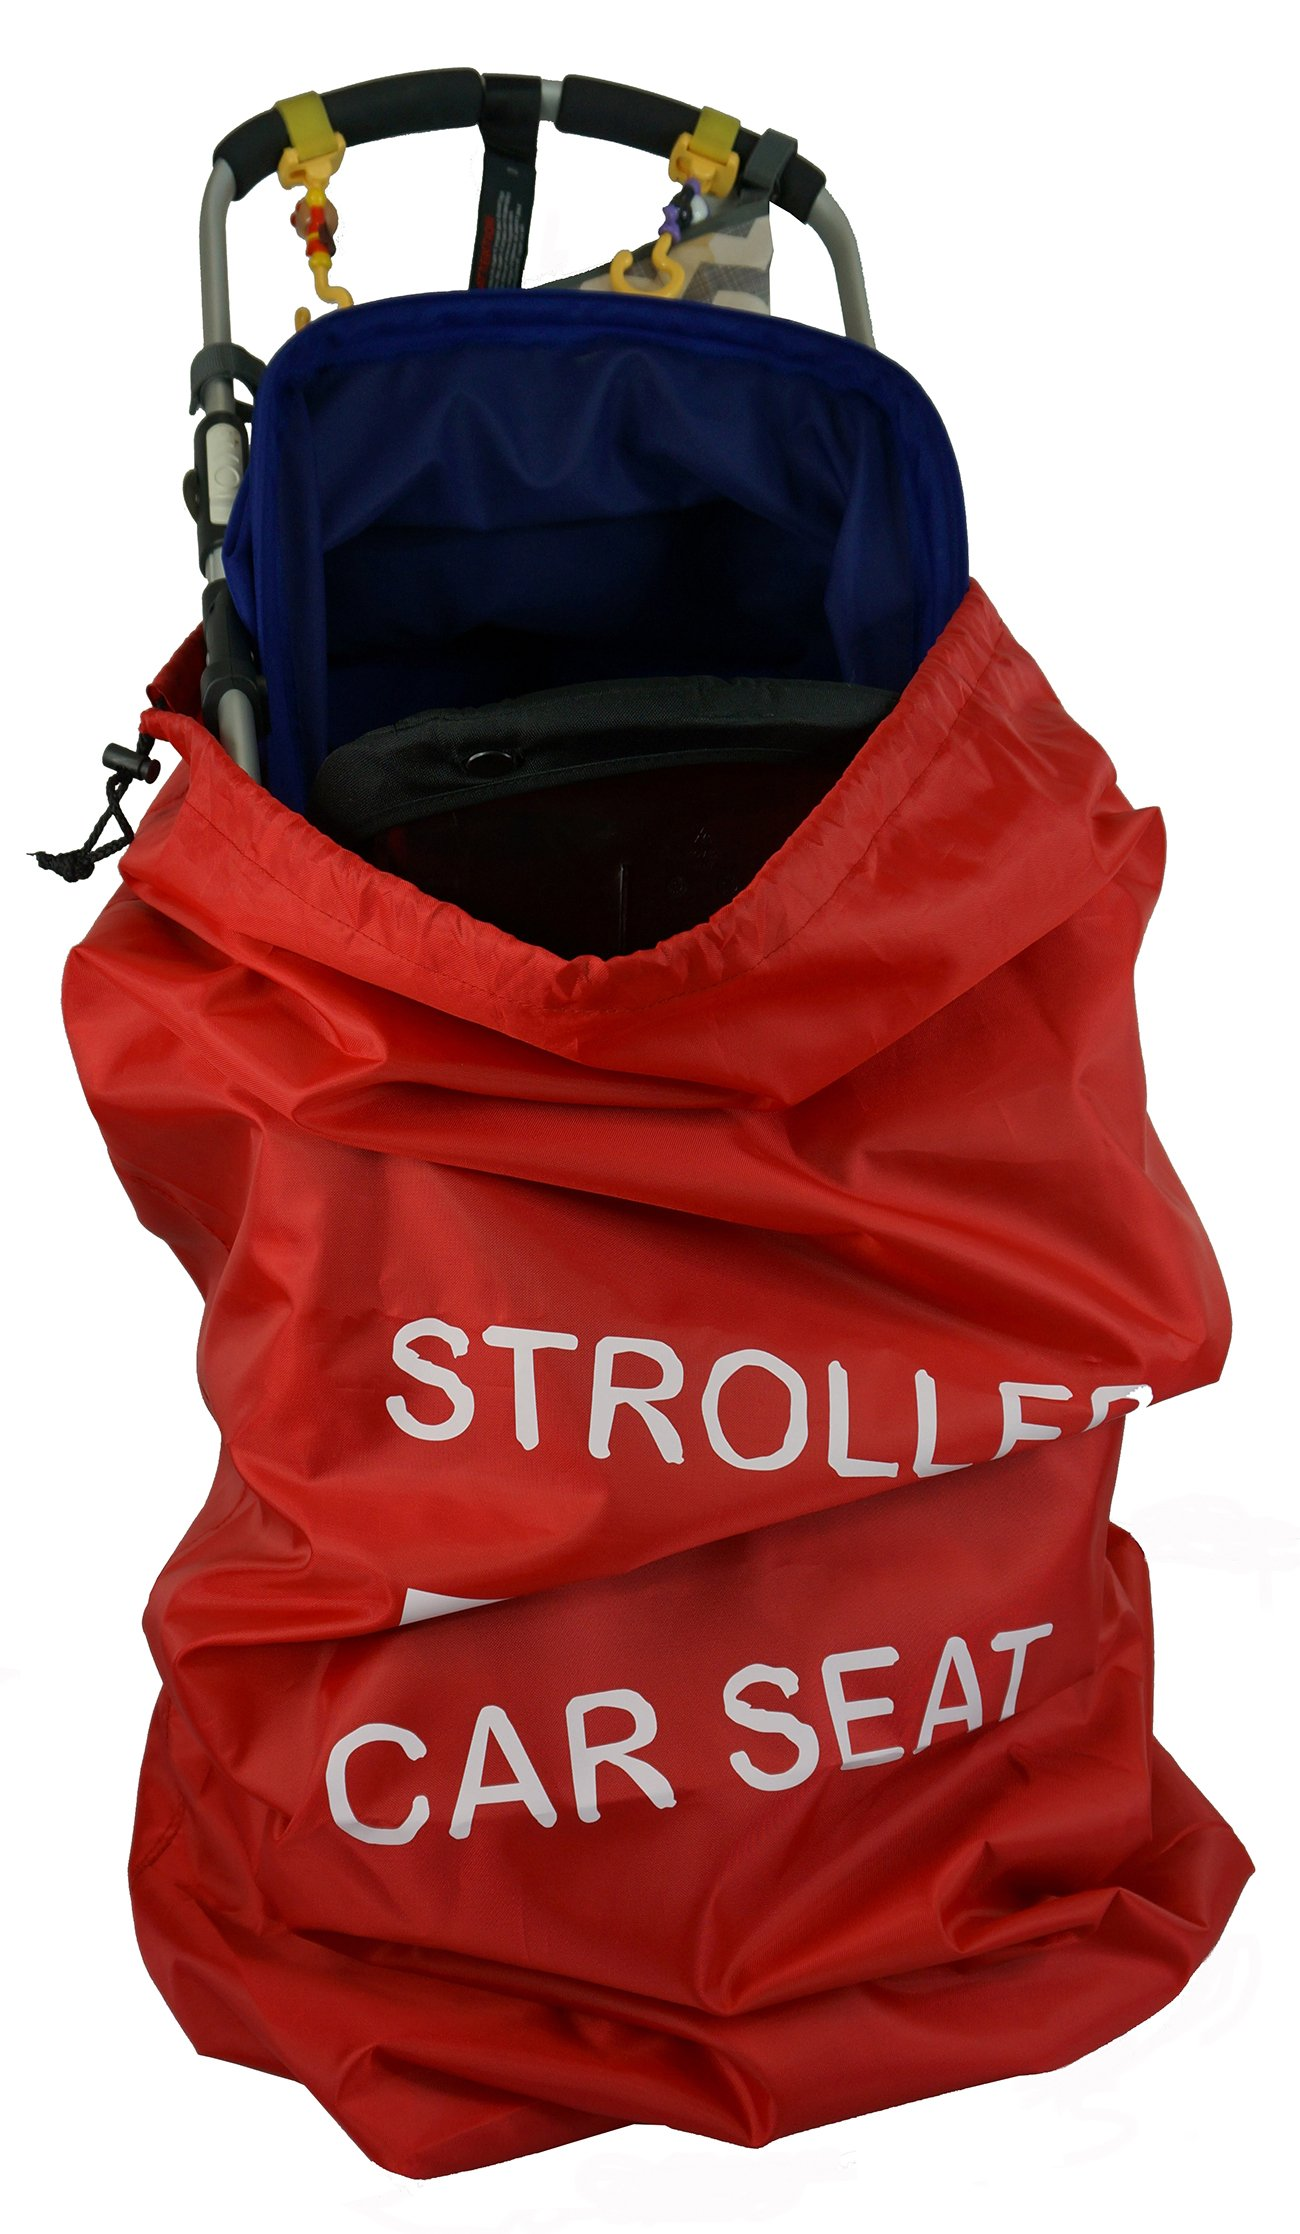 Stroller Travel Bag Gate Check Baby Carseat Backpack Large Lightweight Universal Jogging Single and Double Joggers Car Seat Umbrella Strollers Storage Bags with Padded Shoulder Straps Red